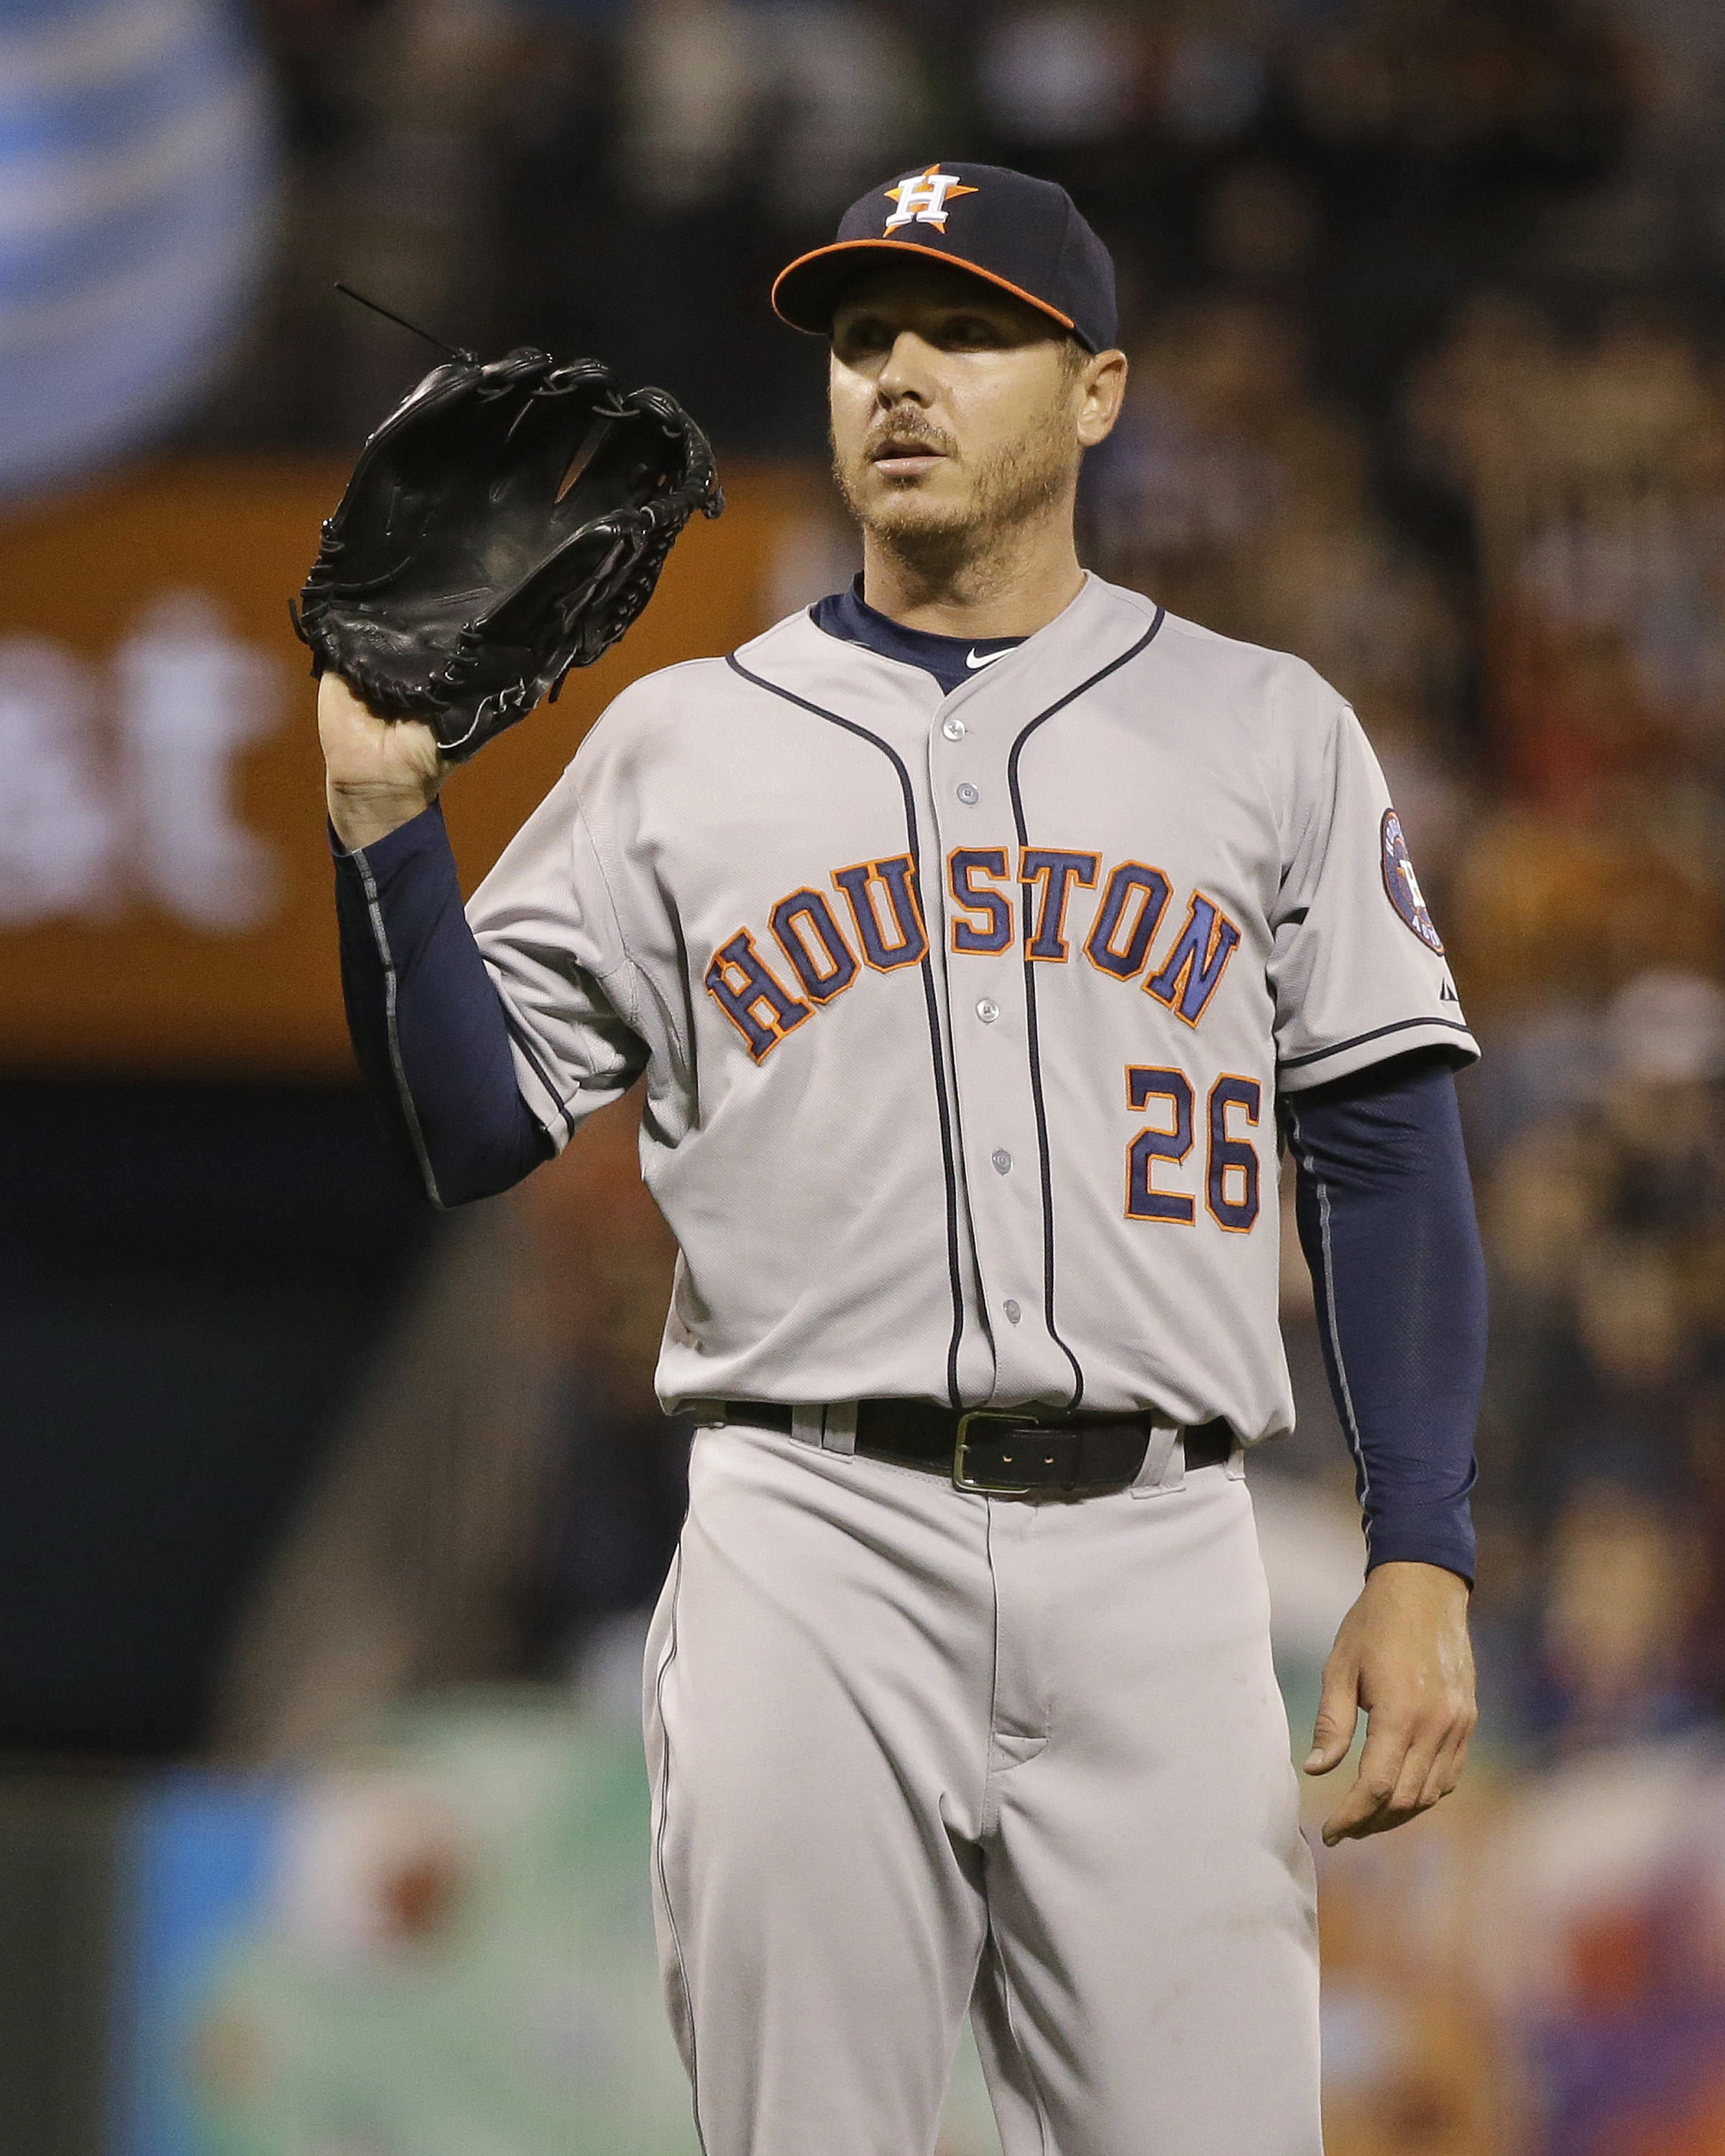 Houston Astros starting pitcher Scott Kazmir stands on the mound after giving up a home run to the San Francisco Giants' Brandon Belt in the fourth inning of their baseball game, Tuesday, Aug. 11, 2015, in San Francisco. (AP Photo/Eric Risberg)